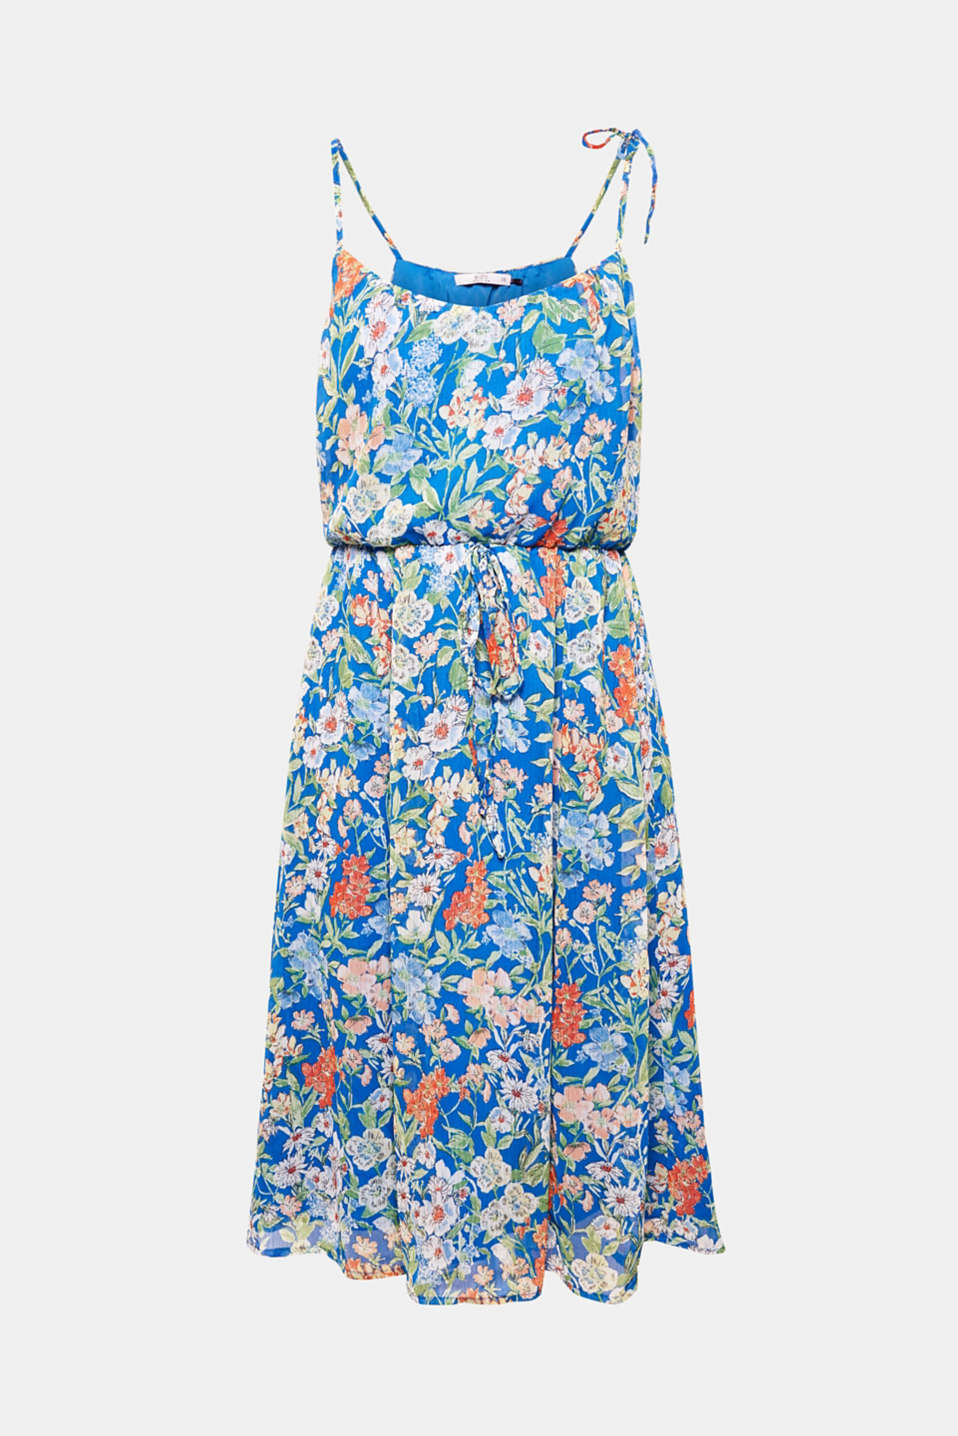 With an airy, figure-skimming midi fit, floral print chiffon fabric and filigree straps, this dress combines all the features that make up a perfect summer piece.